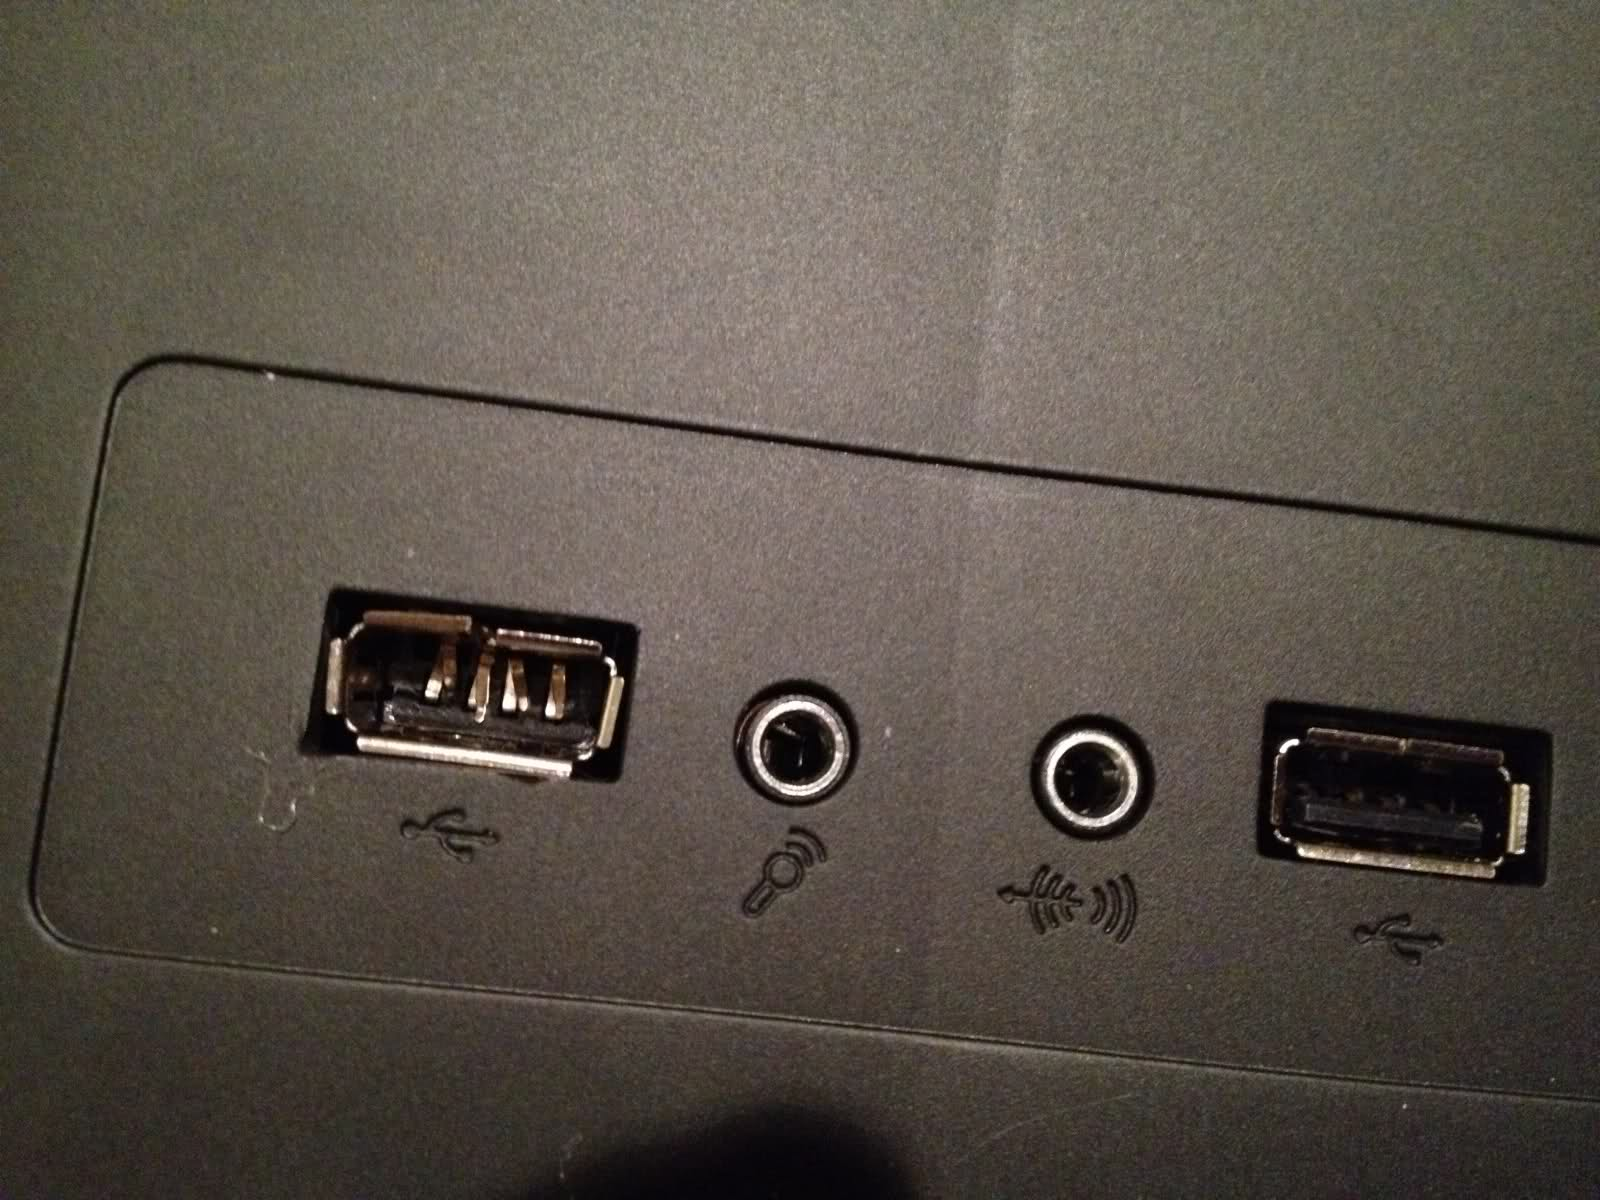 faulty USB port may be causing DSLR not connecting to Mac